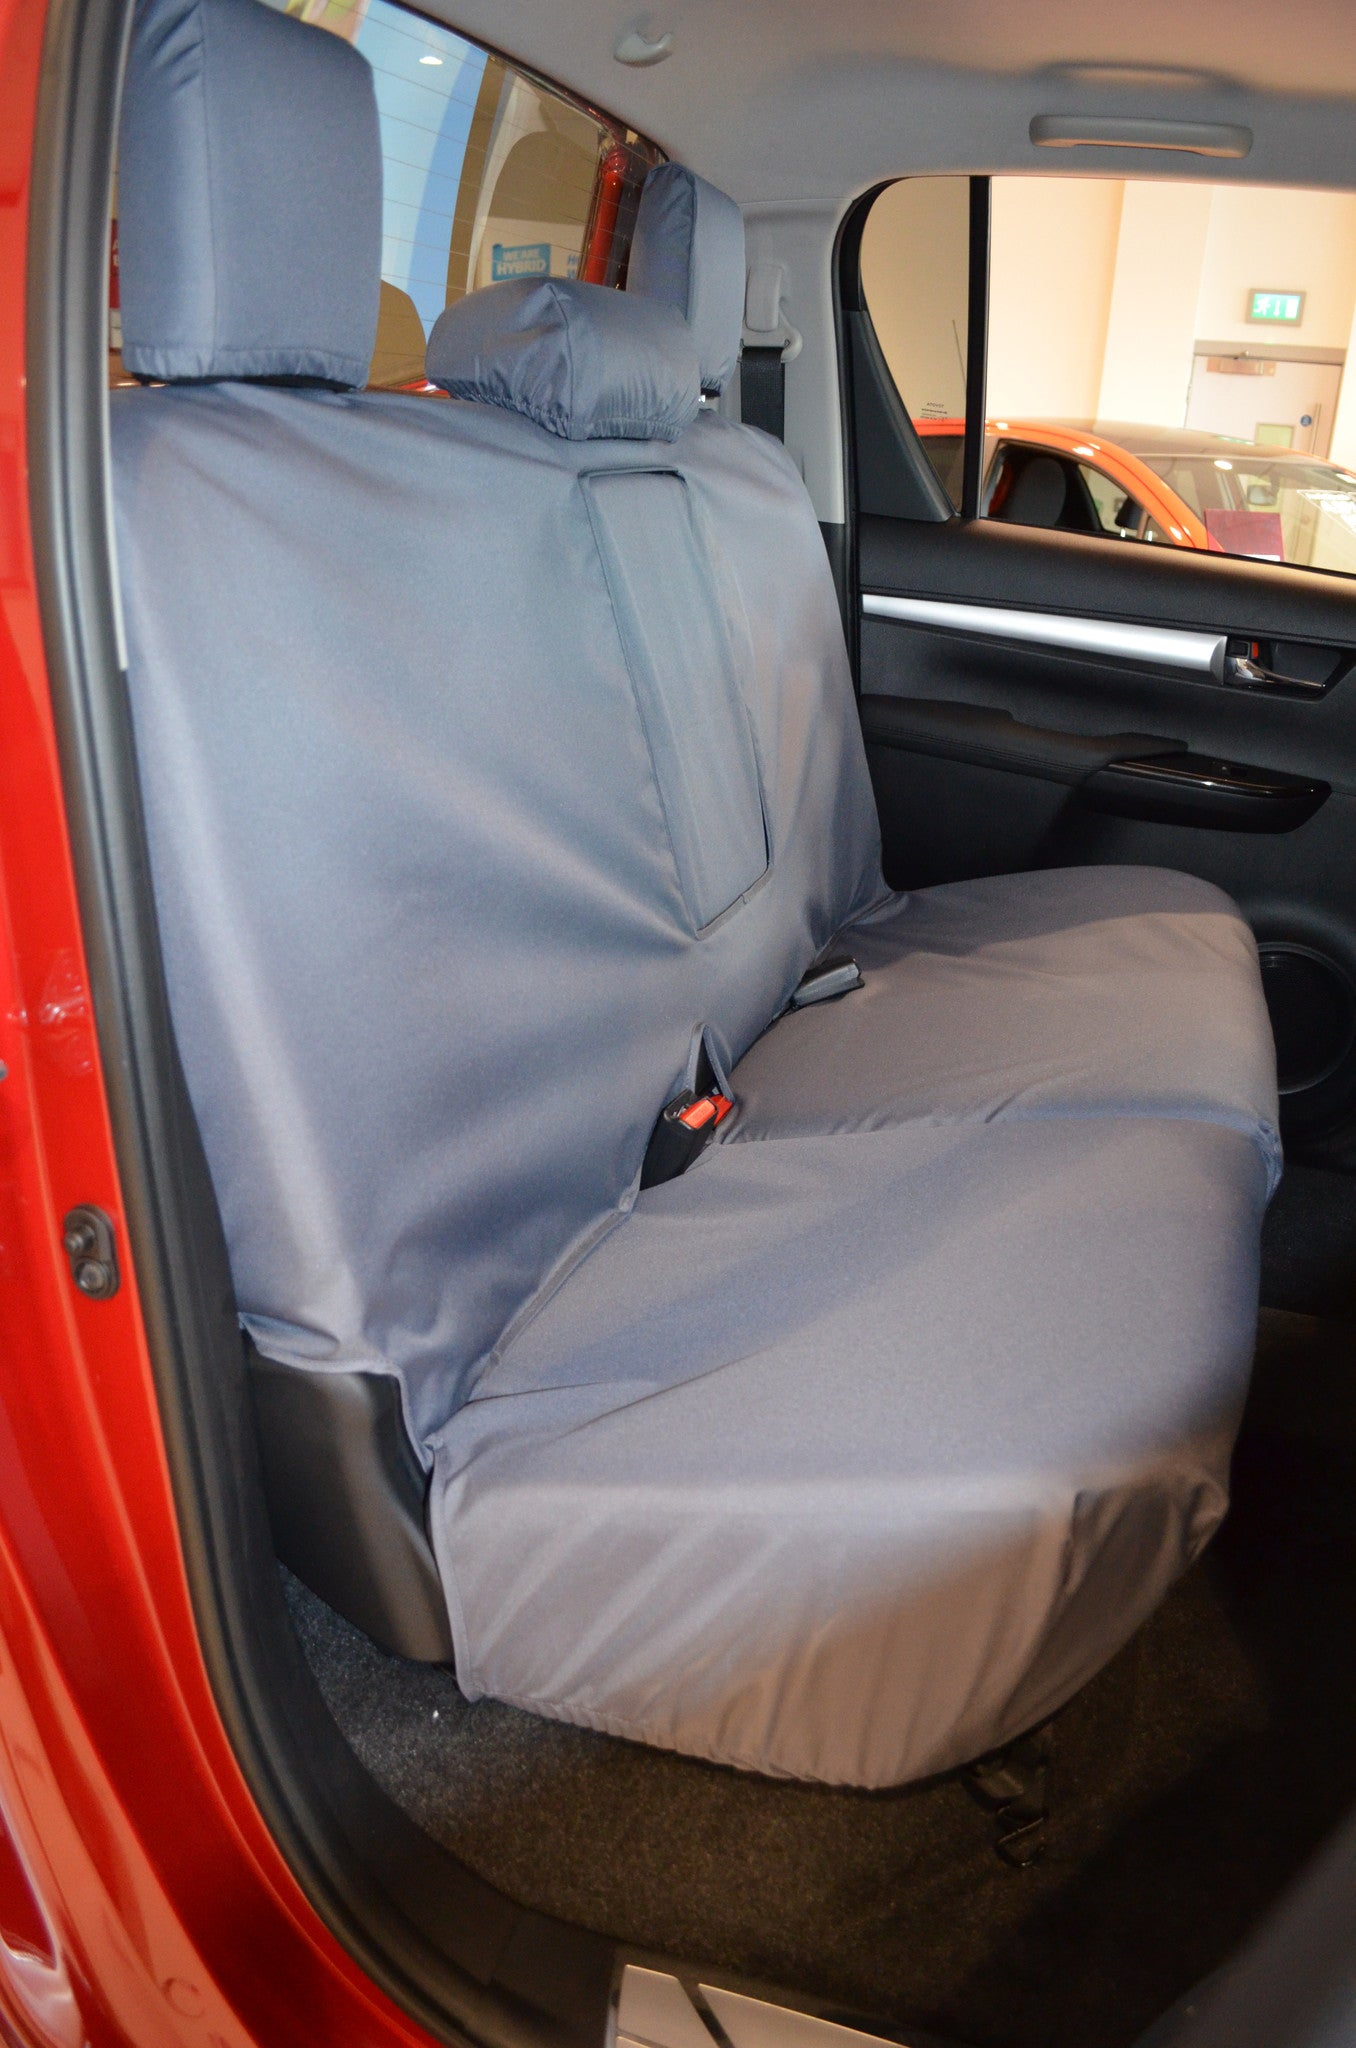 Enjoyable Toyota Hilux Invincible 2016 Custom Fit Waterproof Seat Covers Short Links Chair Design For Home Short Linksinfo